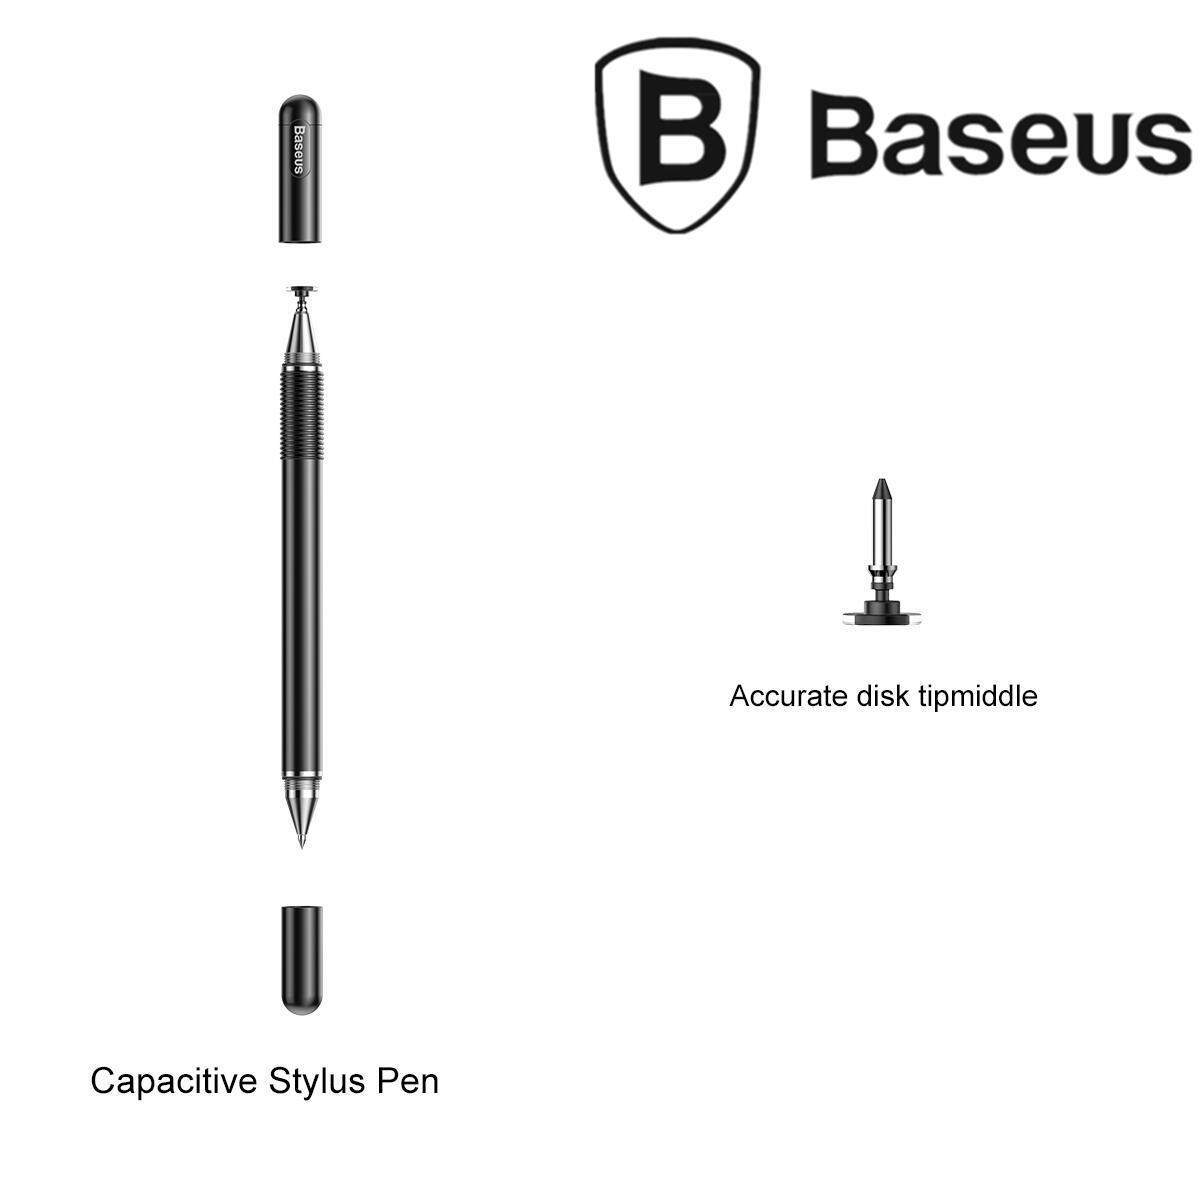 BASEUS 2-in-1 Capacitive Touch Screen Pen Drawing Gaming Writing for Mobile Phone / Tablet